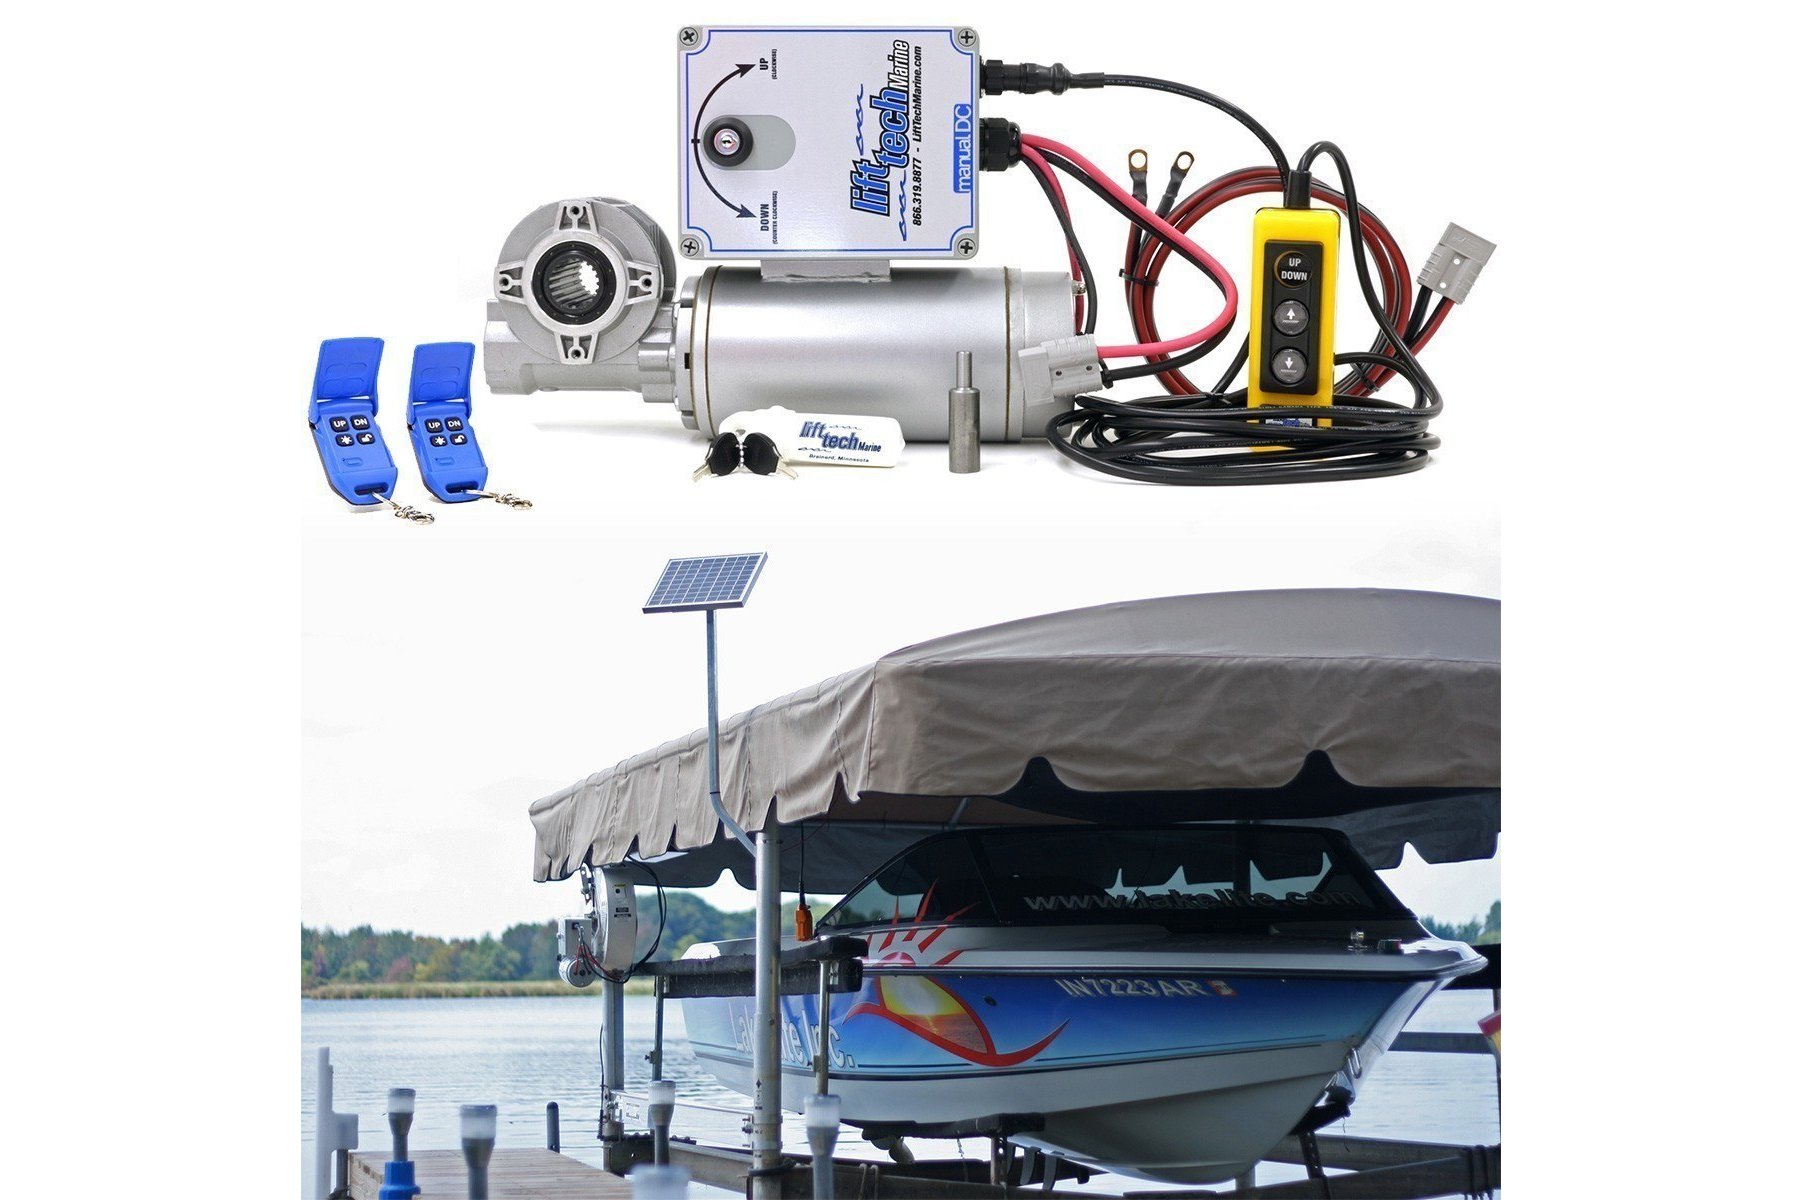 12v boat lift motor 10w 12v solar charging system for Electric boat lift motor